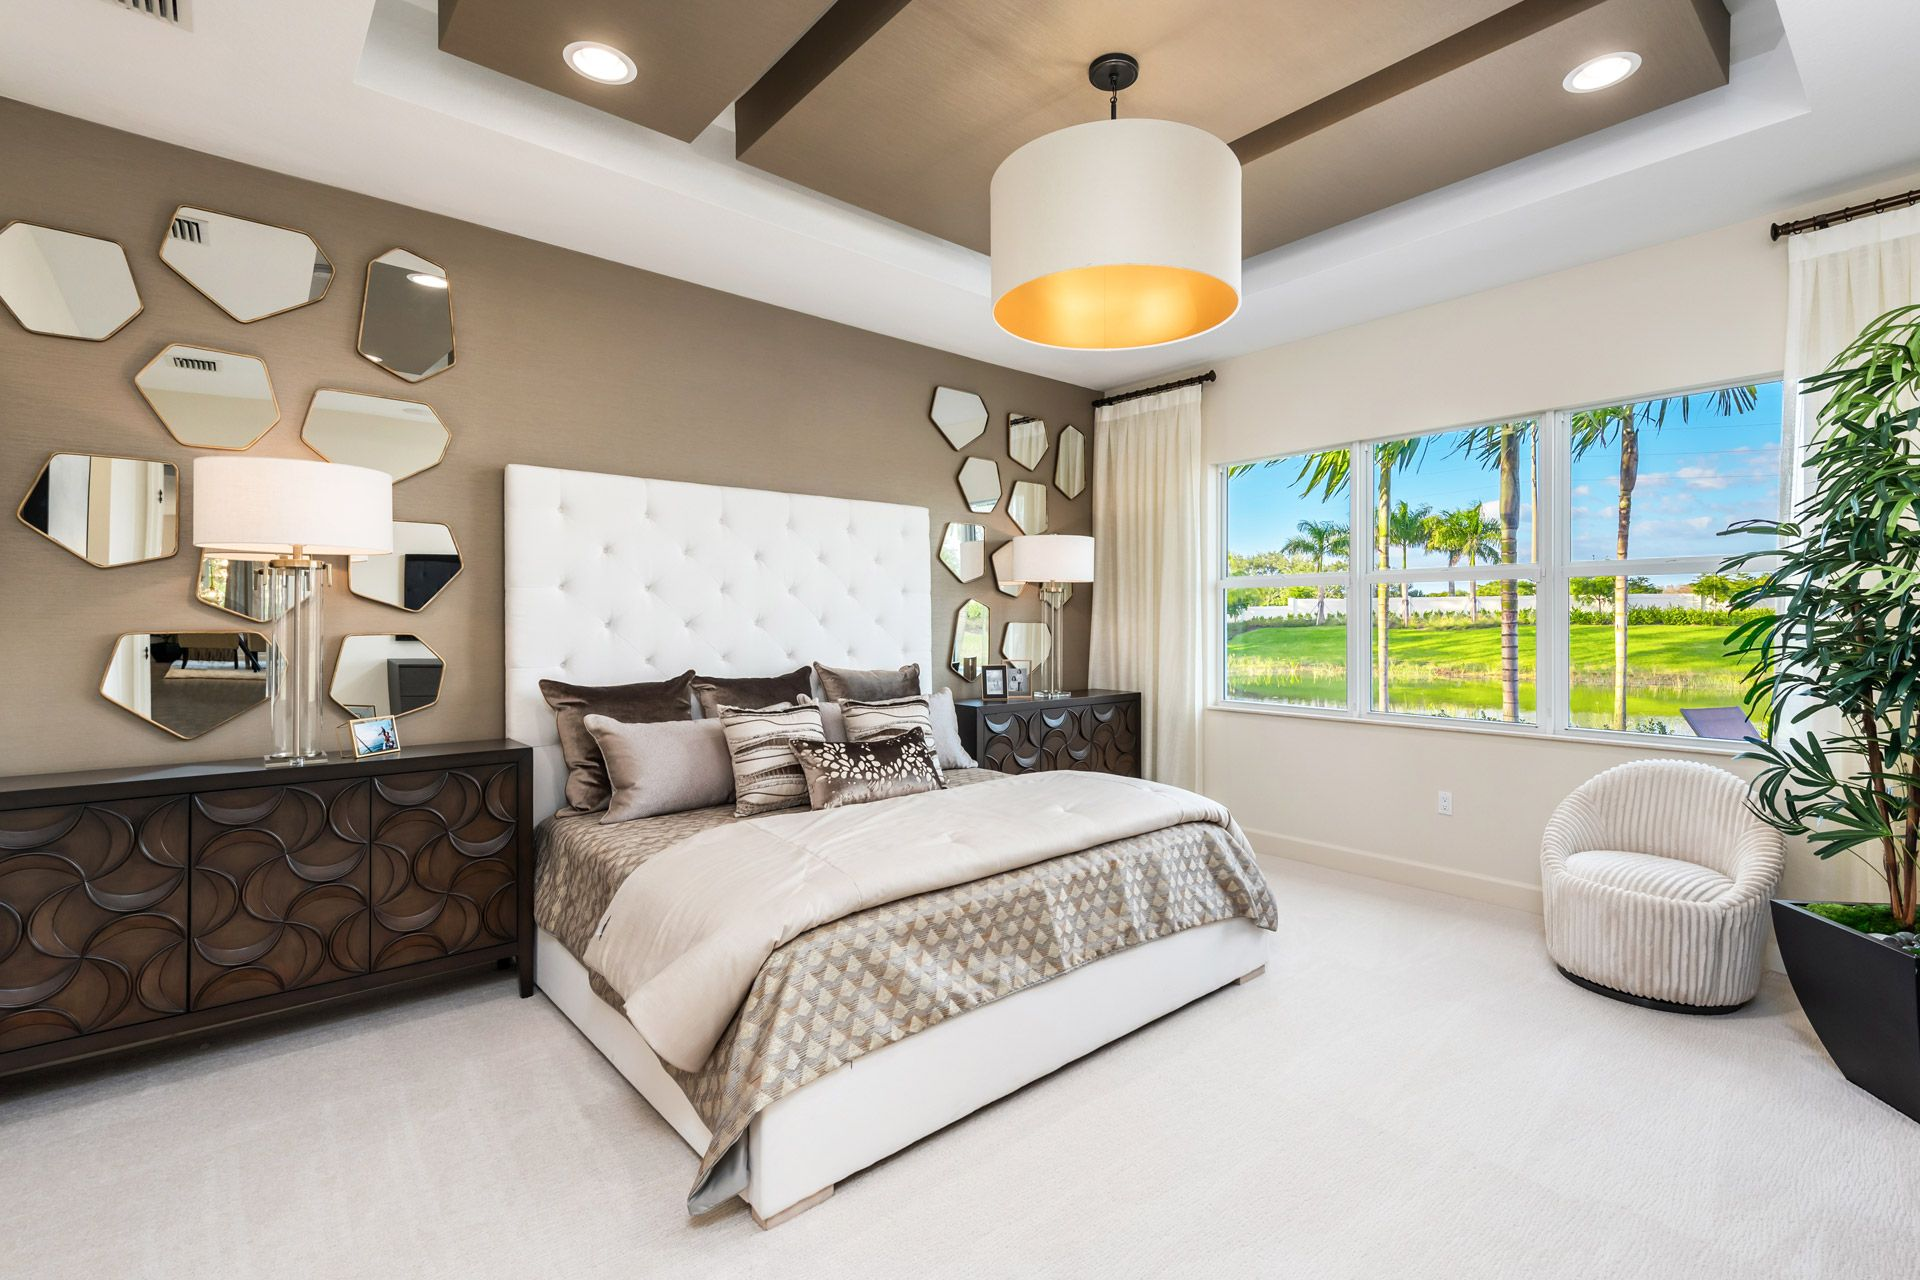 Bedroom featured in the Seabreeze By GL Homes in Naples, FL